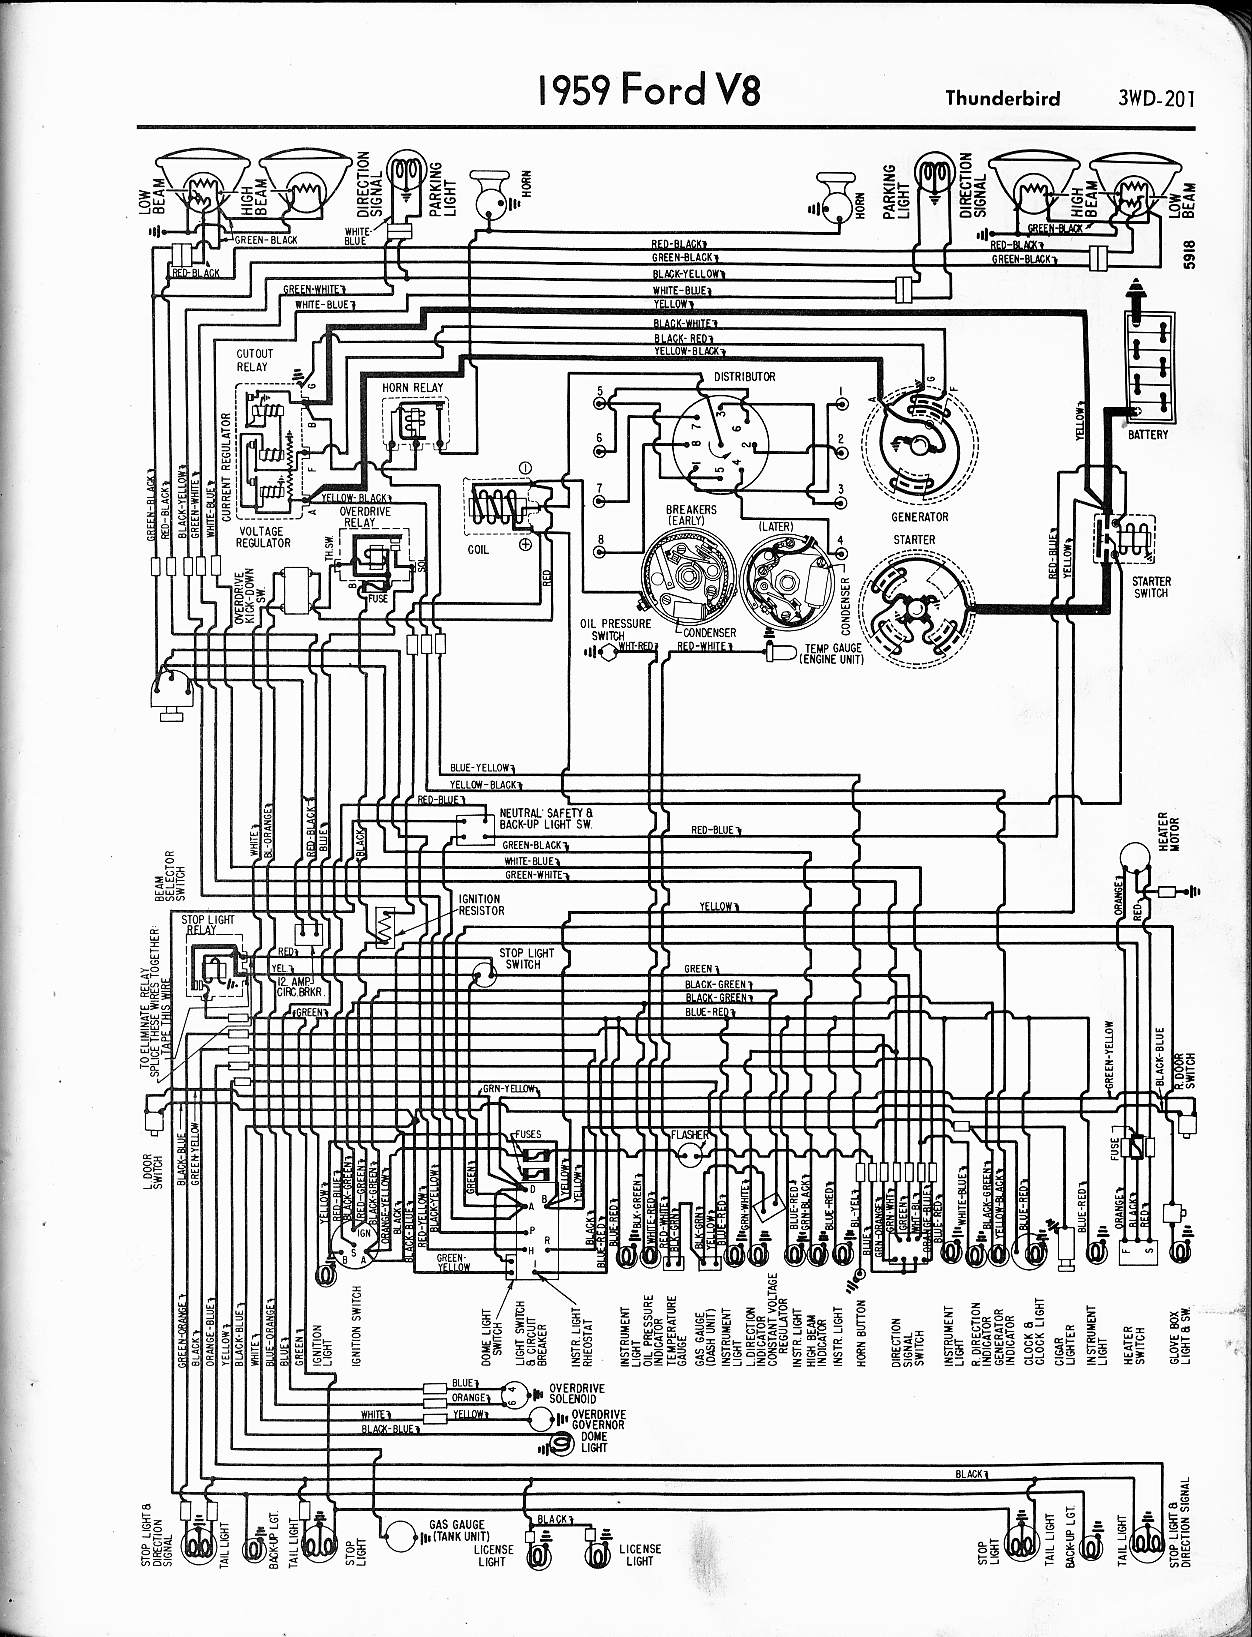 1934 Dodge Wiring Diagrams Library 1989 Chrysler Lebaron Caravan 57 65 Ford Schematic 1957